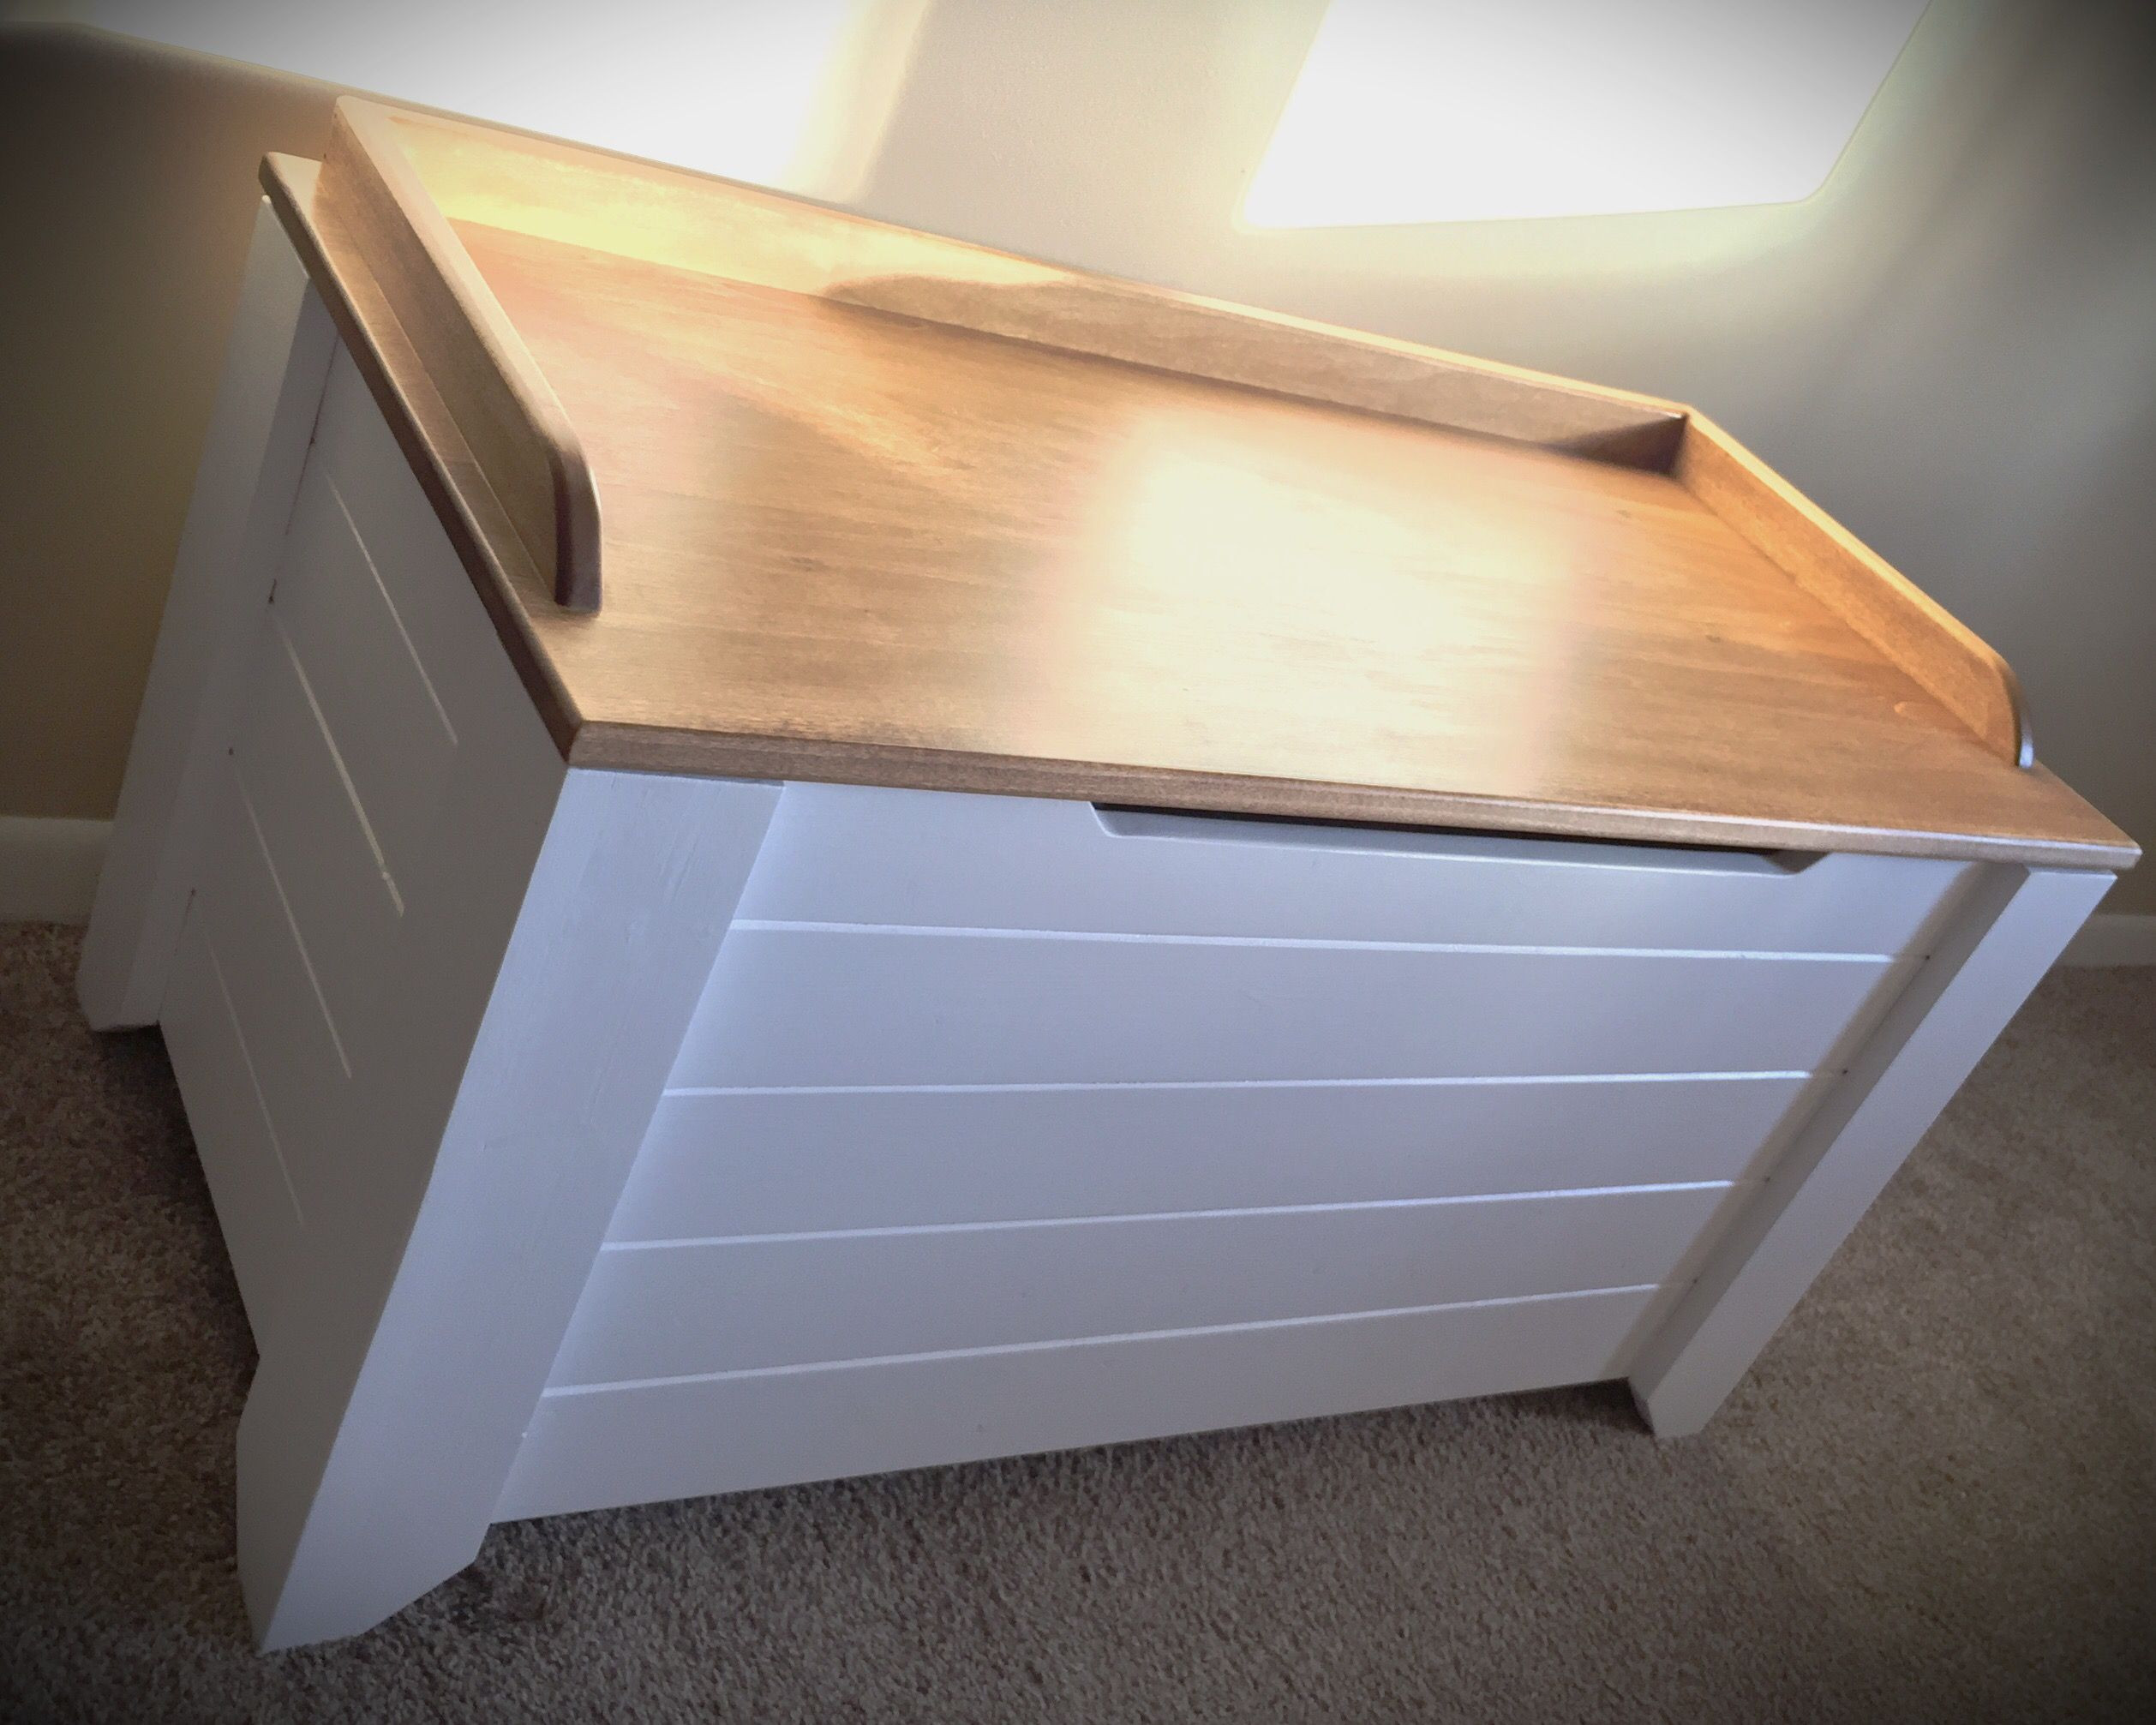 Best ideas about DIY Storage Chest . Save or Pin Farmhouse Style Toy Box Blanket Chest DIY Projects Now.